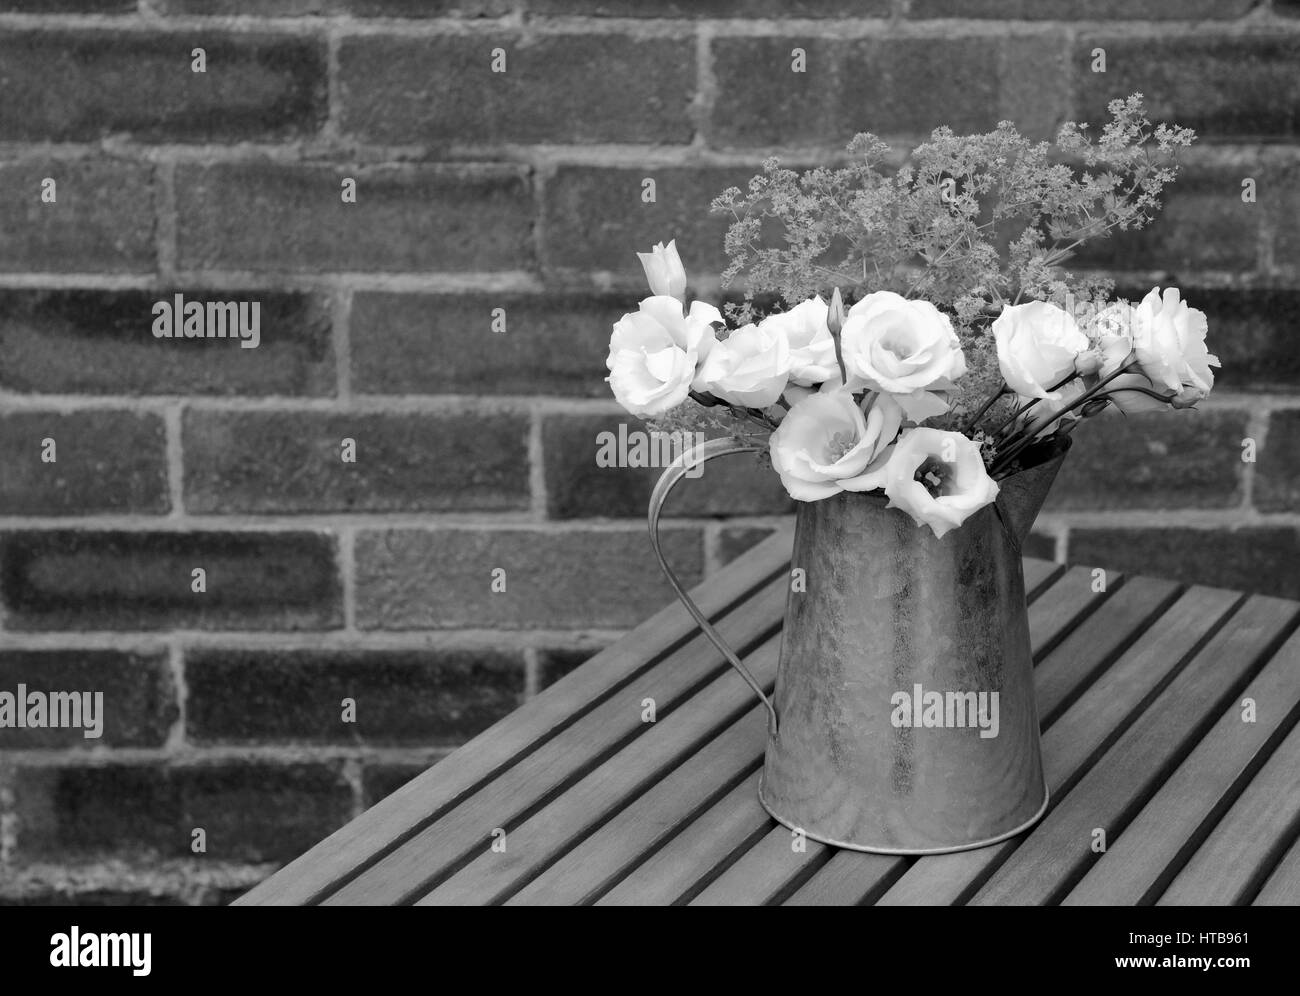 White prairie gentian flowers with ladys mantle in a metal pitcher on a wooden table against a brick wall with copy - Stock Image